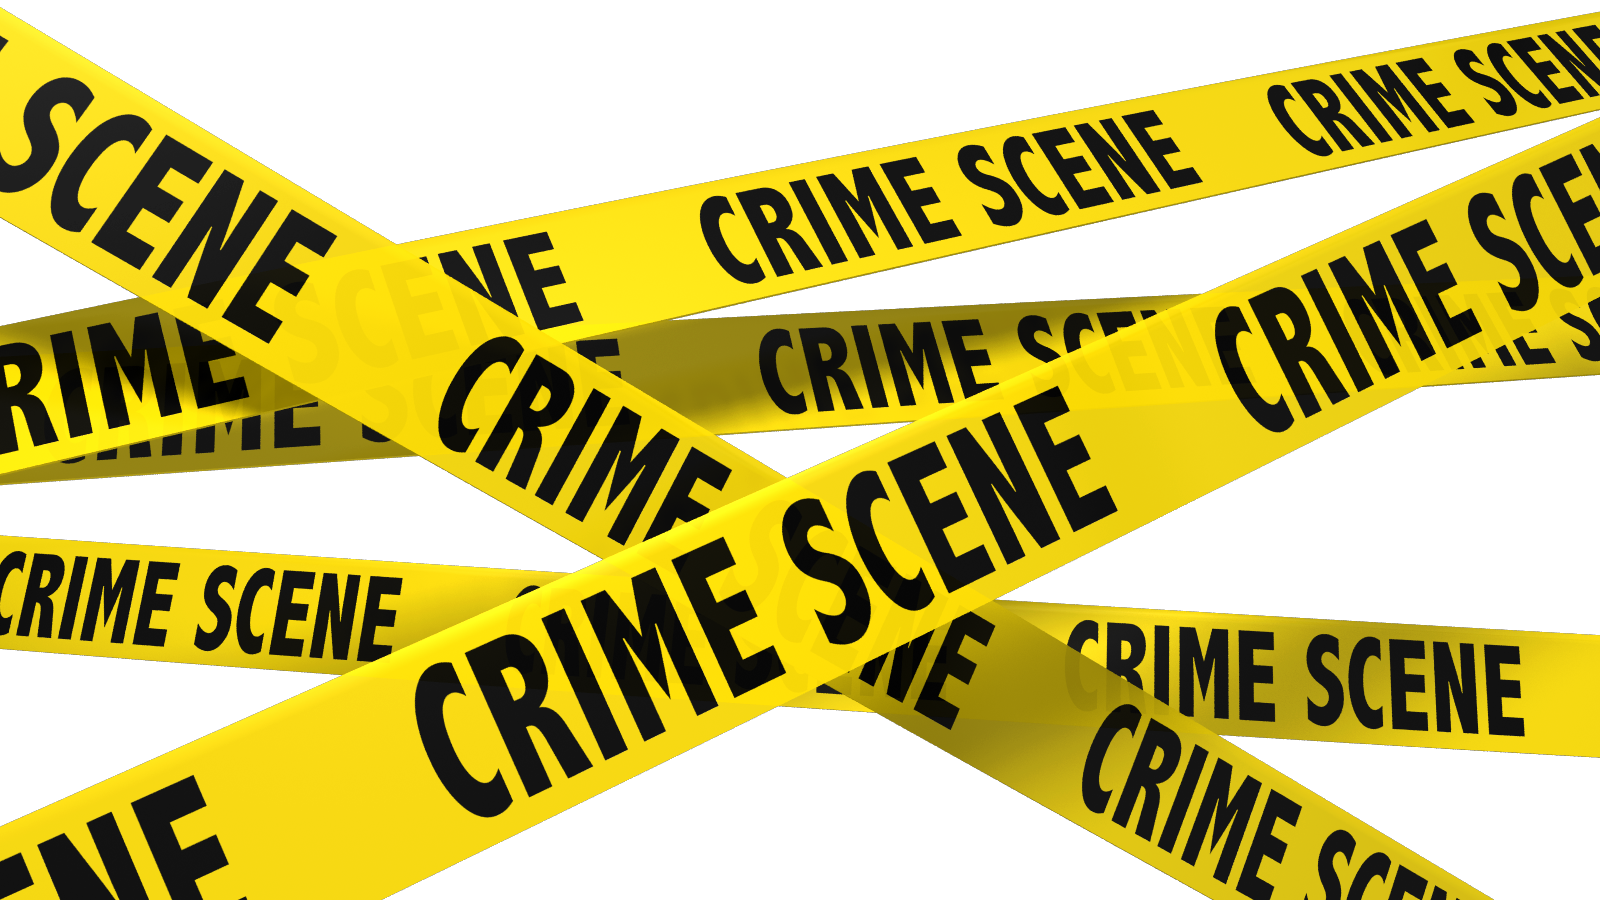 Criminal clipart computer crime. Your home is not